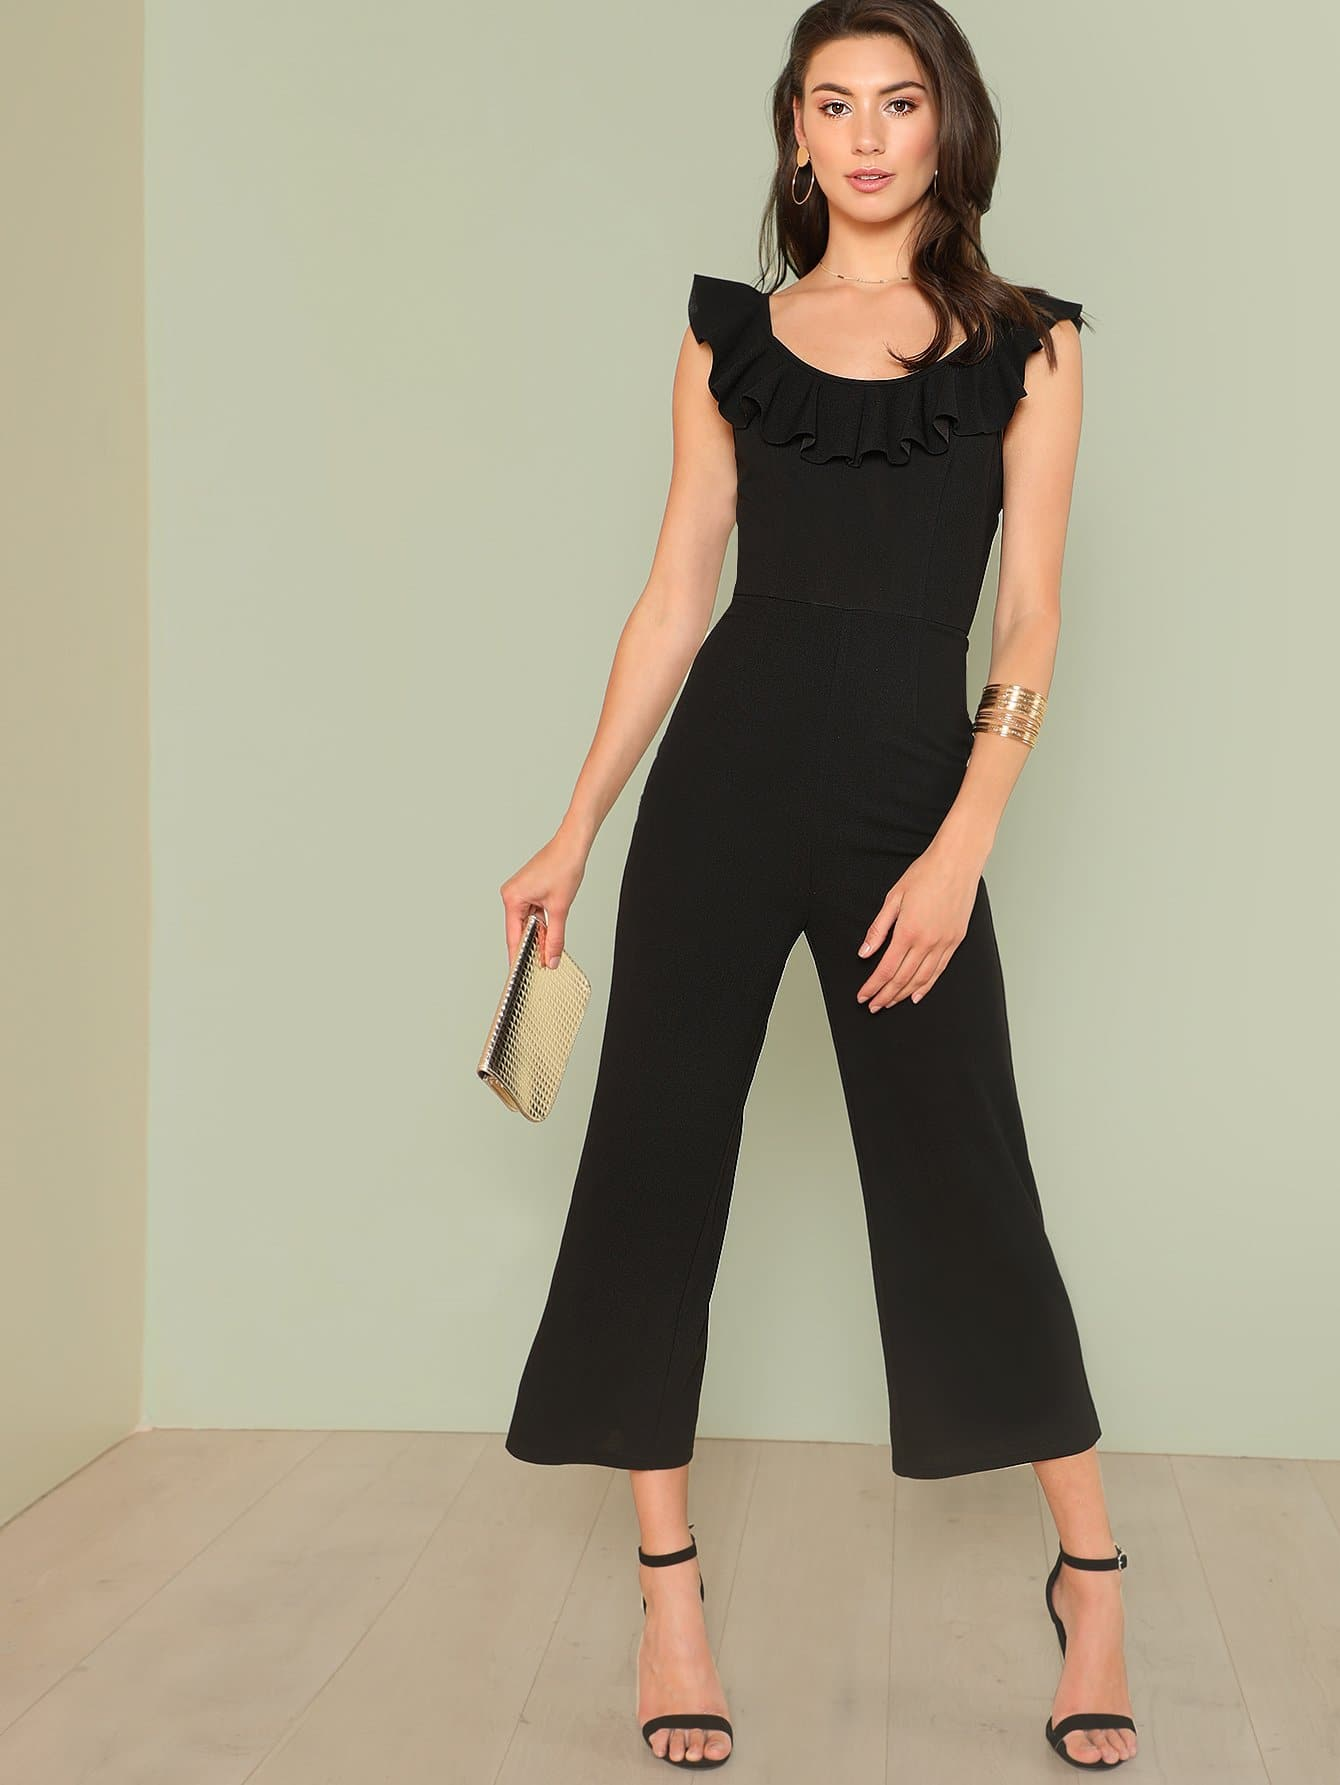 Ruffle Trim Scoop Neck Wide Leg Jumpsuit choker neck embroidered ruffle trim jumpsuit